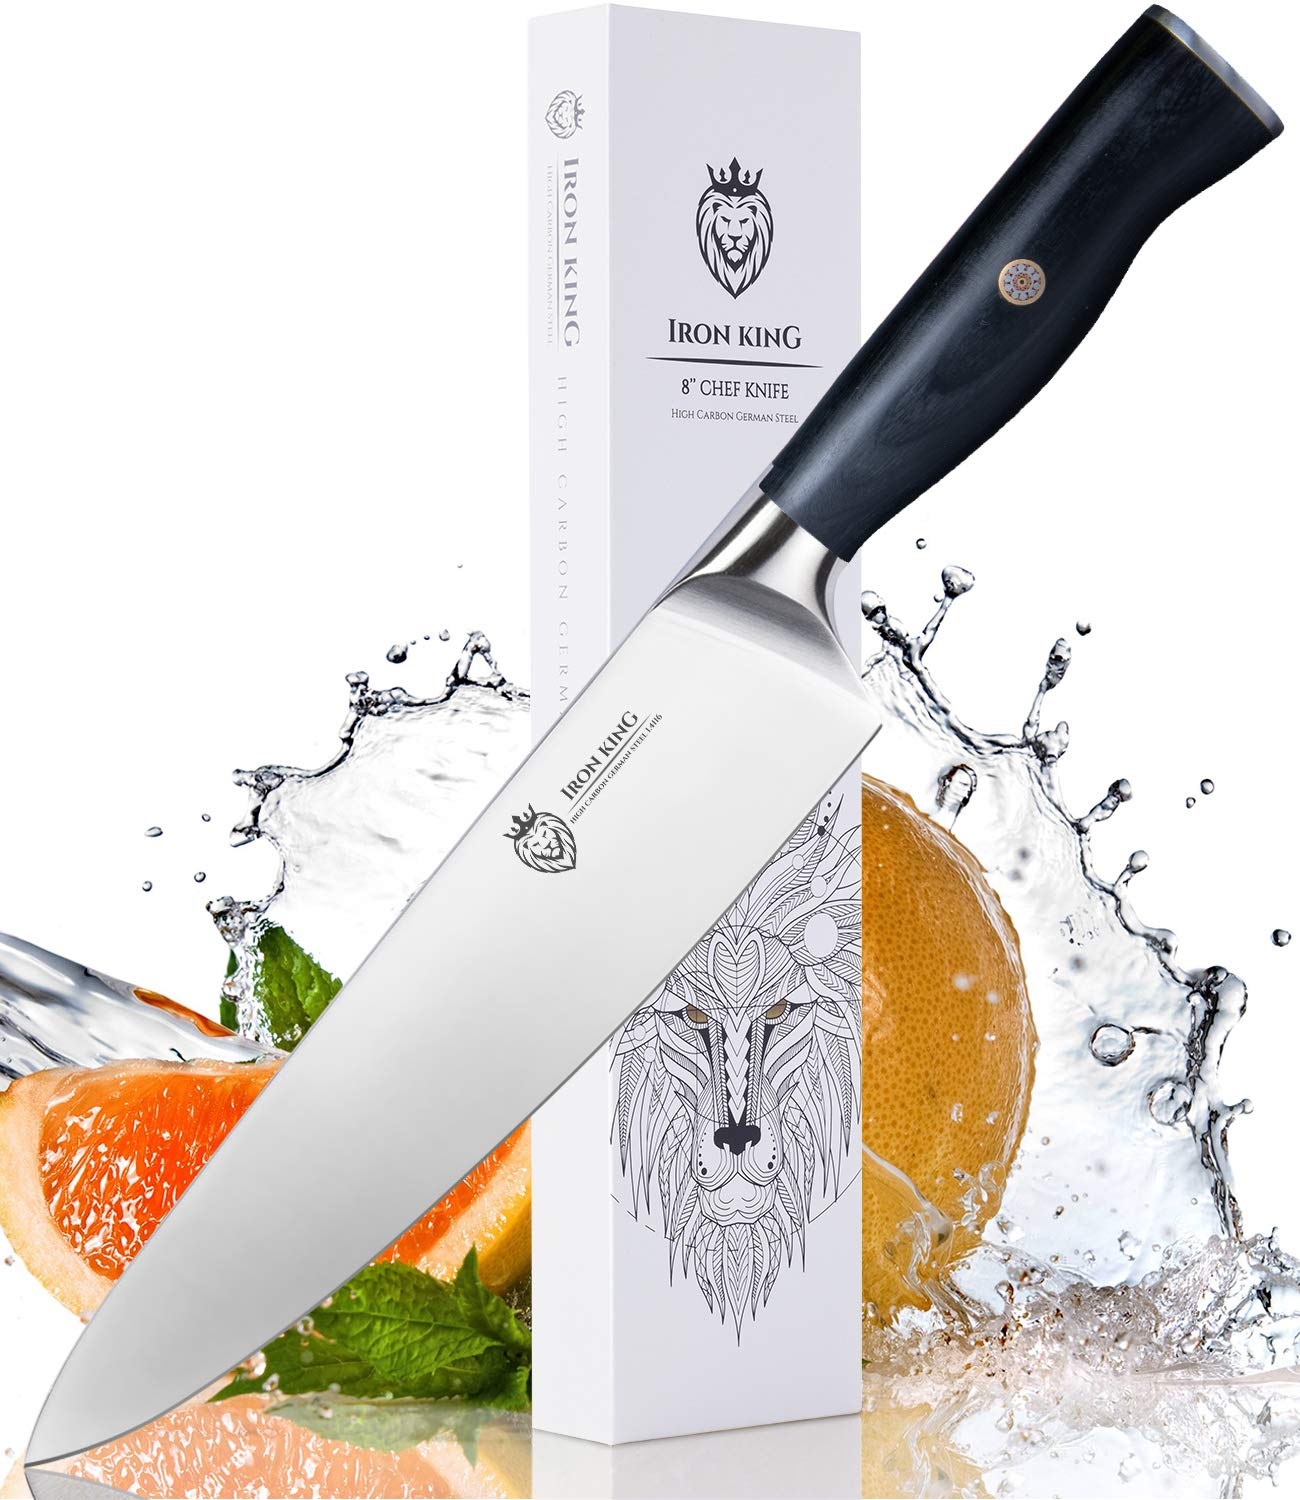 High Carbon Steel Chef Knife | Razor Sharp Kitchen Knife with Unique Ergonomic Handle | 8 Inch Professional Chef's Knife | Best Kitchen Gift for Cooking Lovers and Chefs